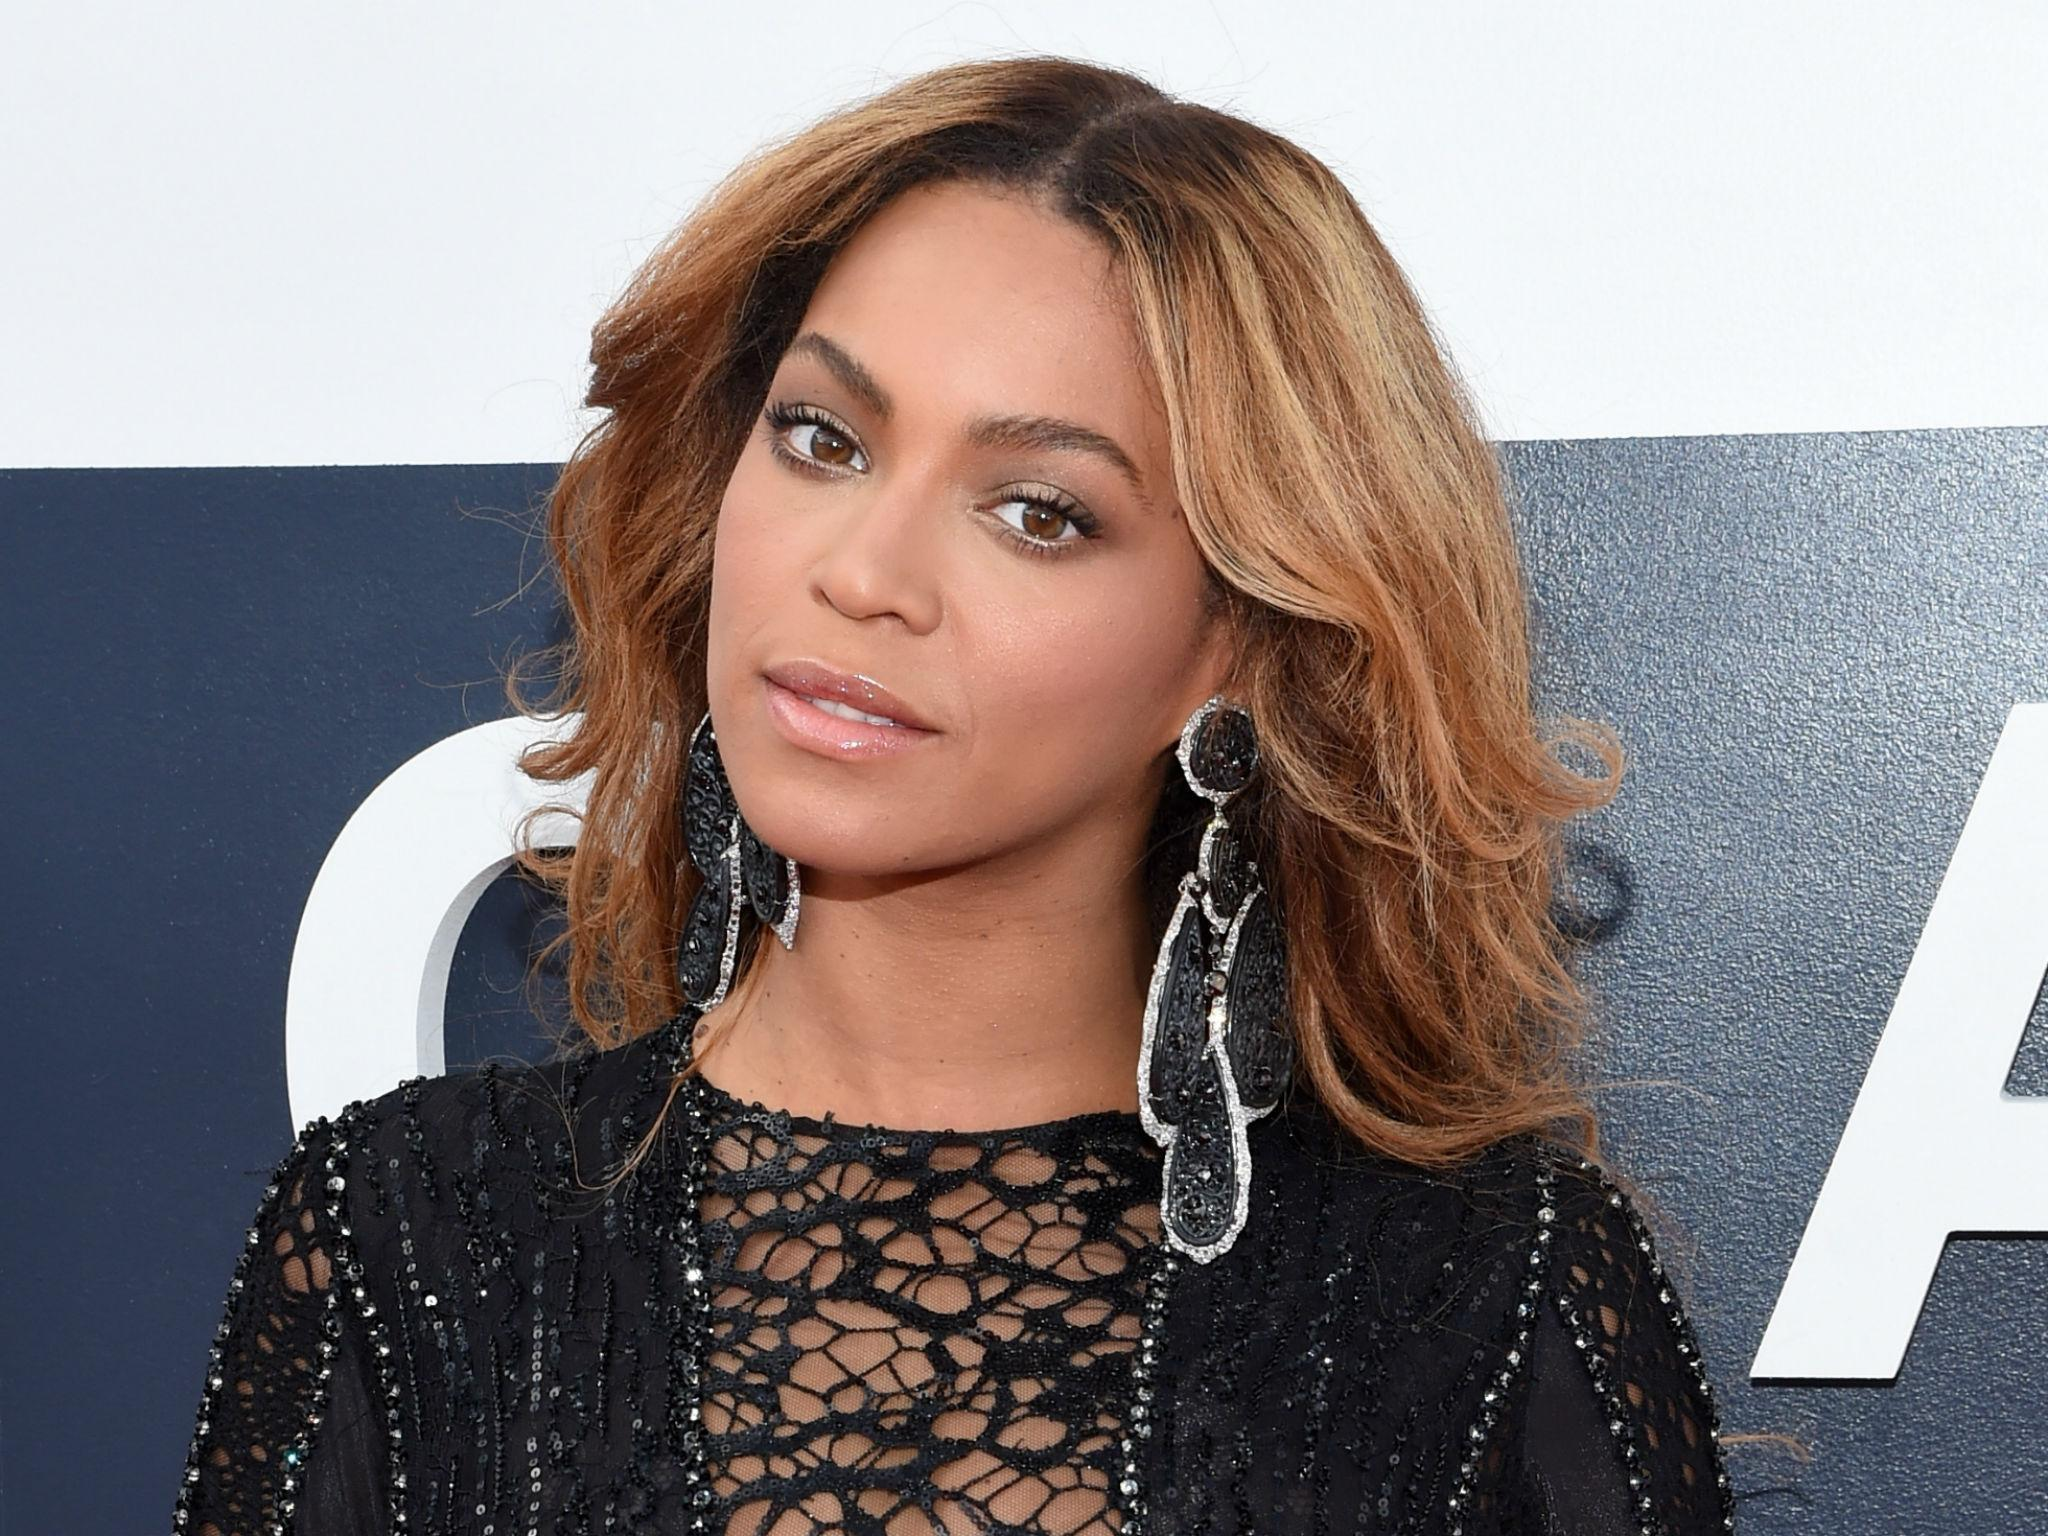 Beyoncé Explains Why Women Need To Own Their Sexuality'